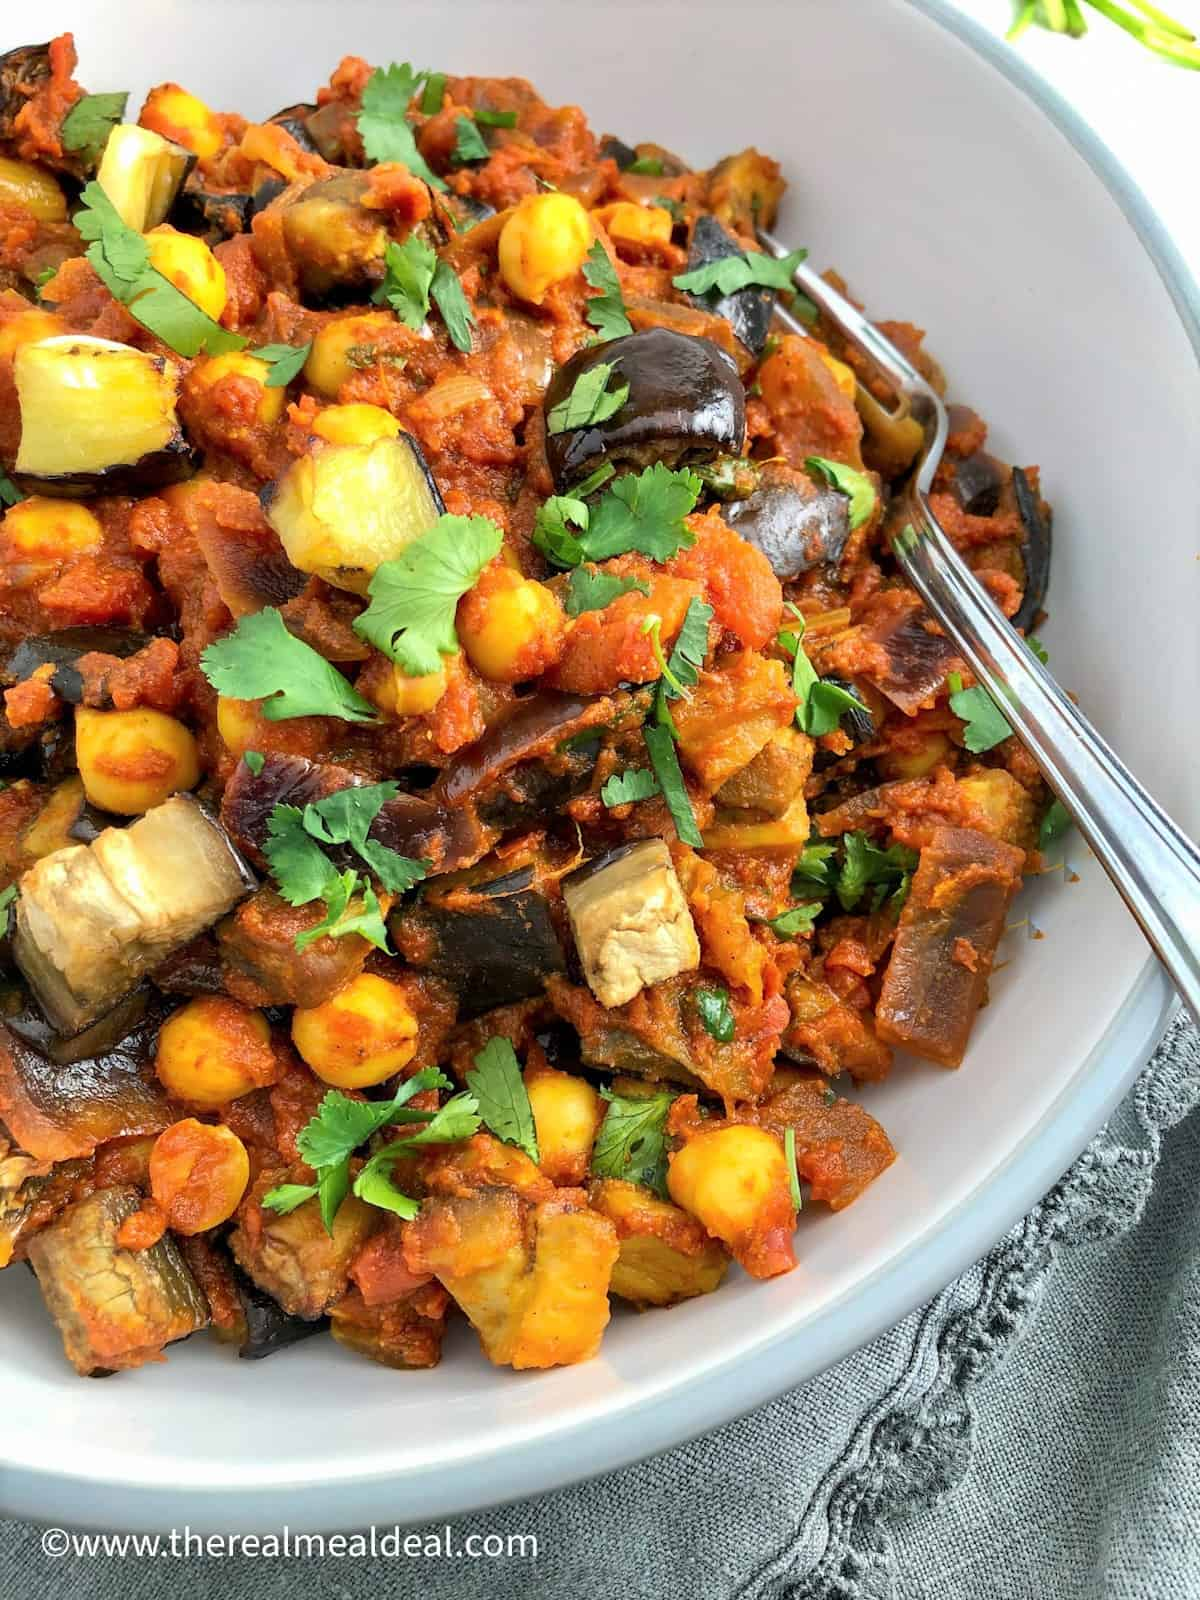 Aubergine and chickpea curry in bowl topped with fresh coriander leaves